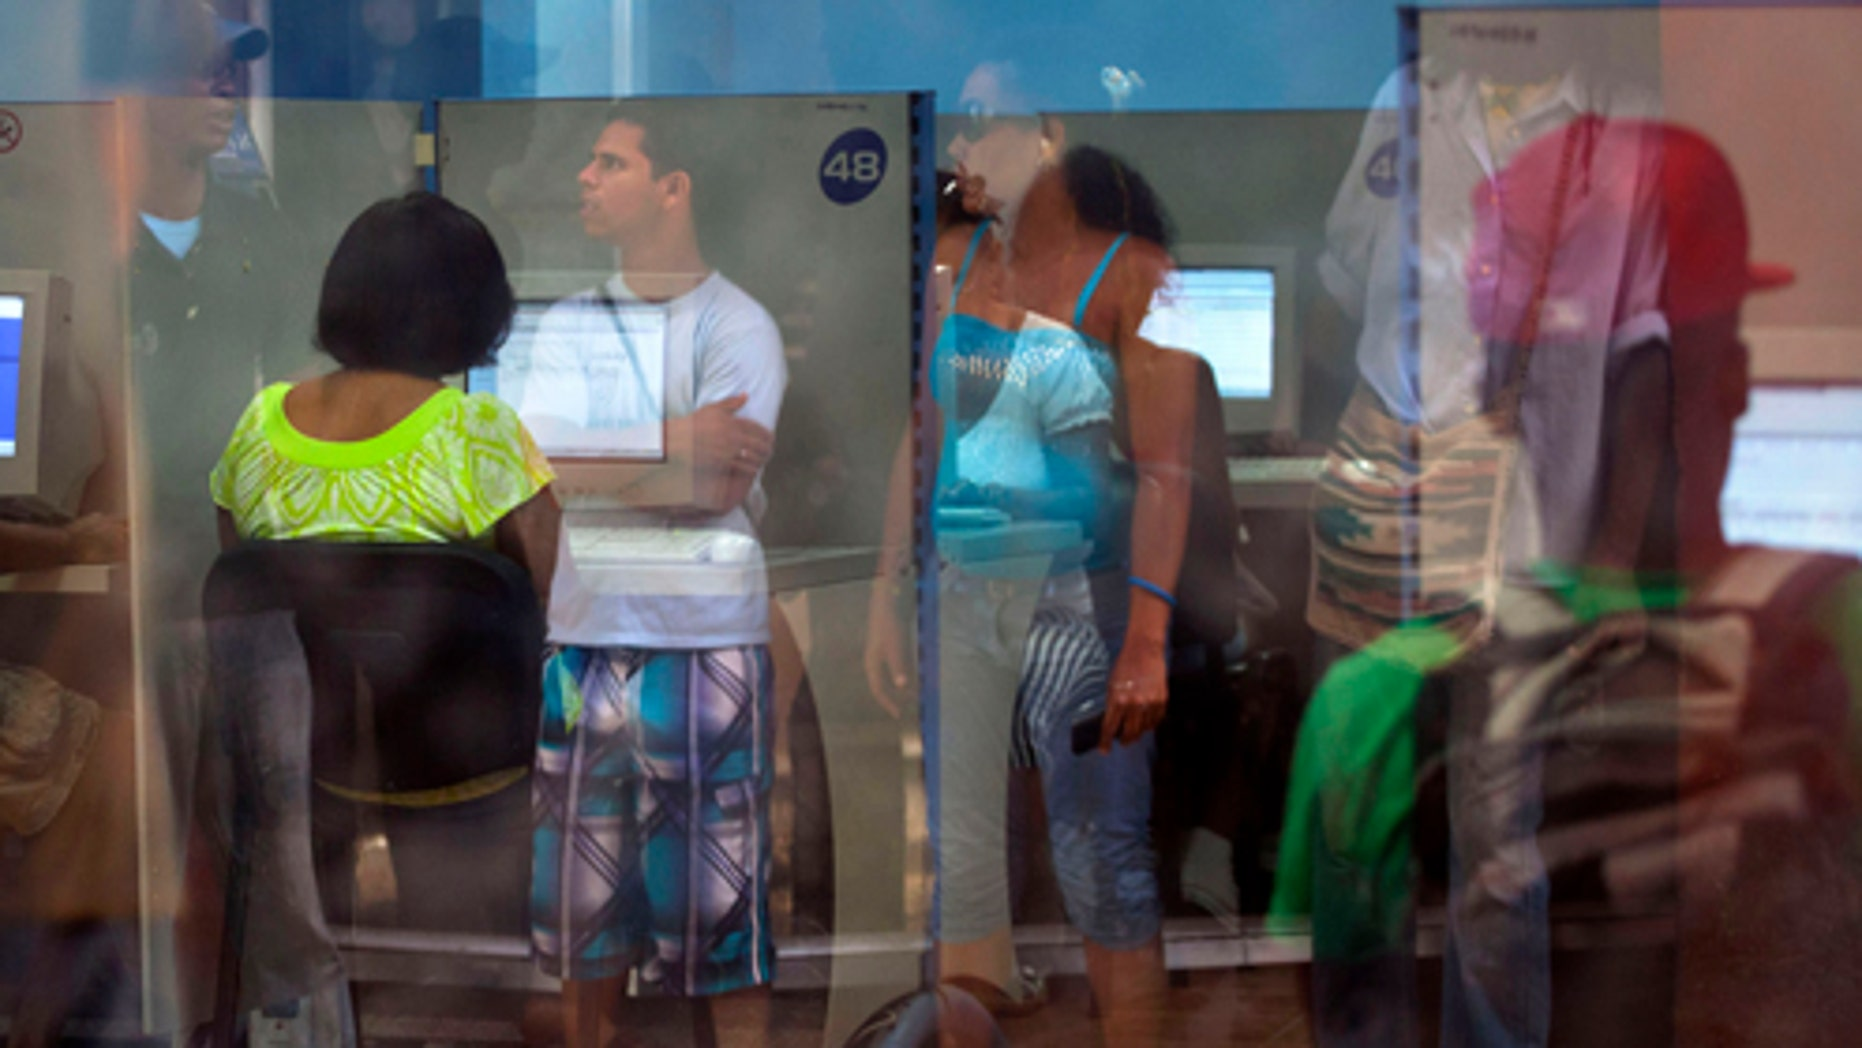 People reflected in the window line up at a post office as they wait to use the Internet service in Havana, Cuba, Tuesday, May 28, 2013. Cuba announced Tuesday that it will offer more access to the Internet starting June 4, at navegation sites around the country for $4.50 an hour. The average salary in Cuba is $15 per month. (AP Photo/Ramon Espinosa)